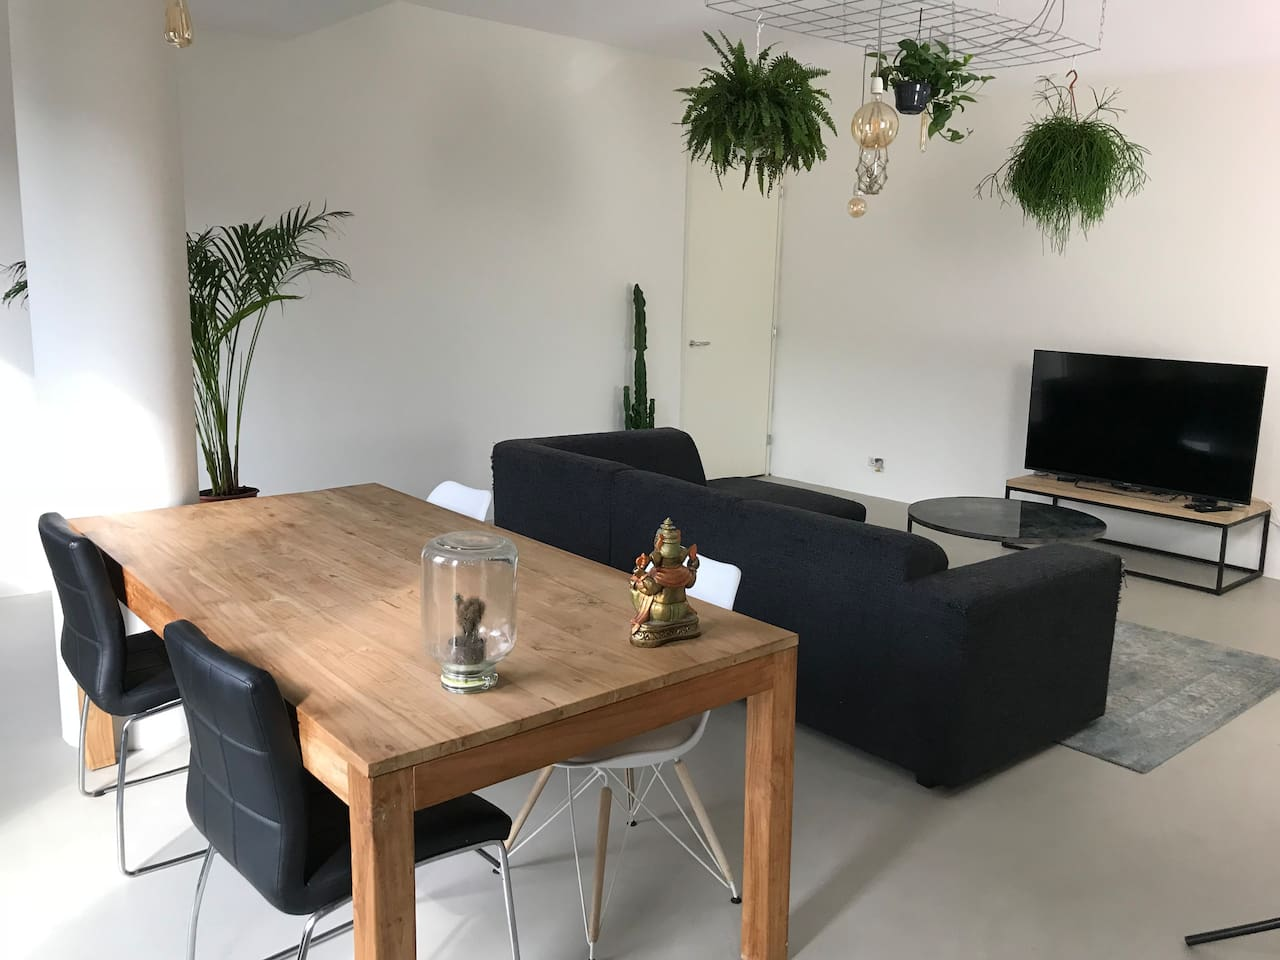 Spacious living room (40m2) with comfortable couch and big table to eat or work on.